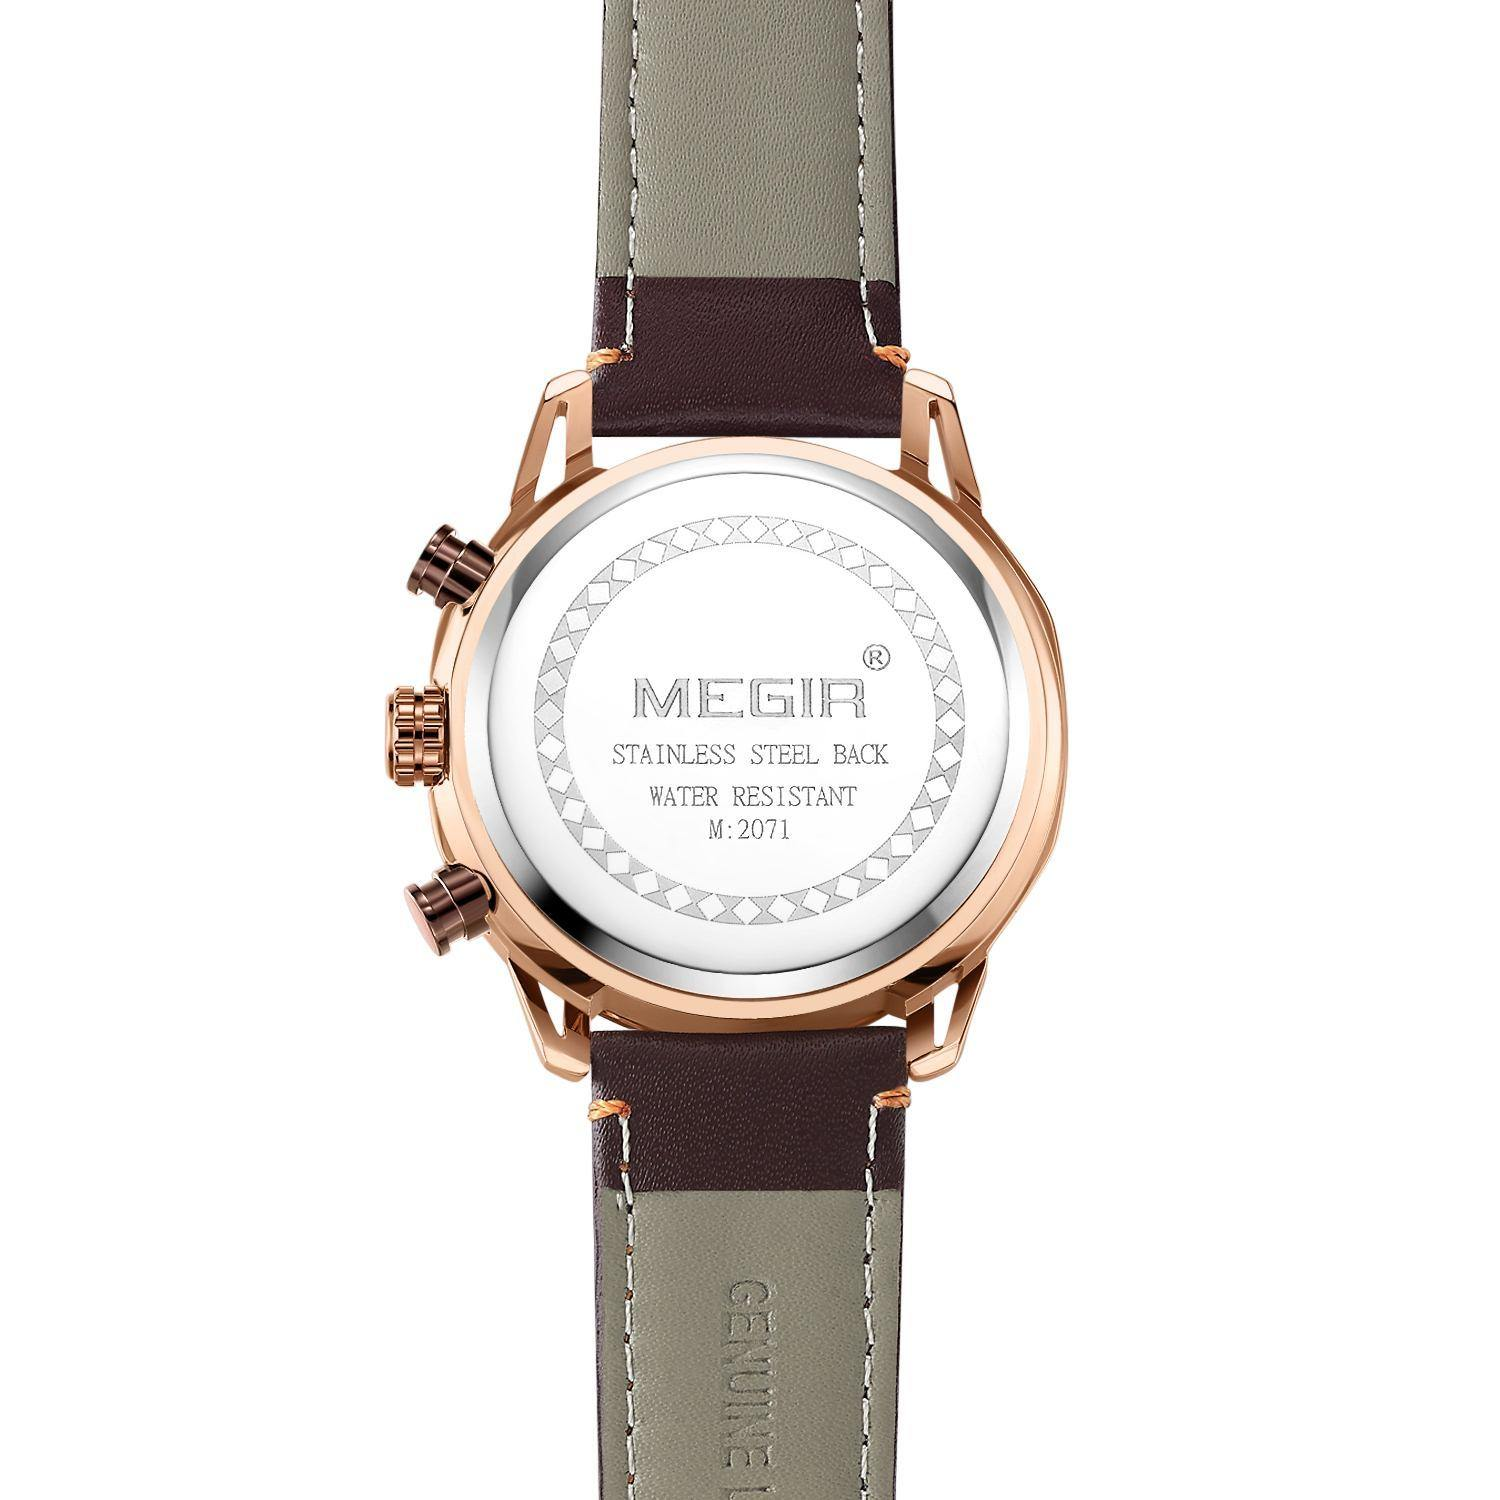 MEGIR Creative Chronograph Watch for Men 2071 - MEGIR